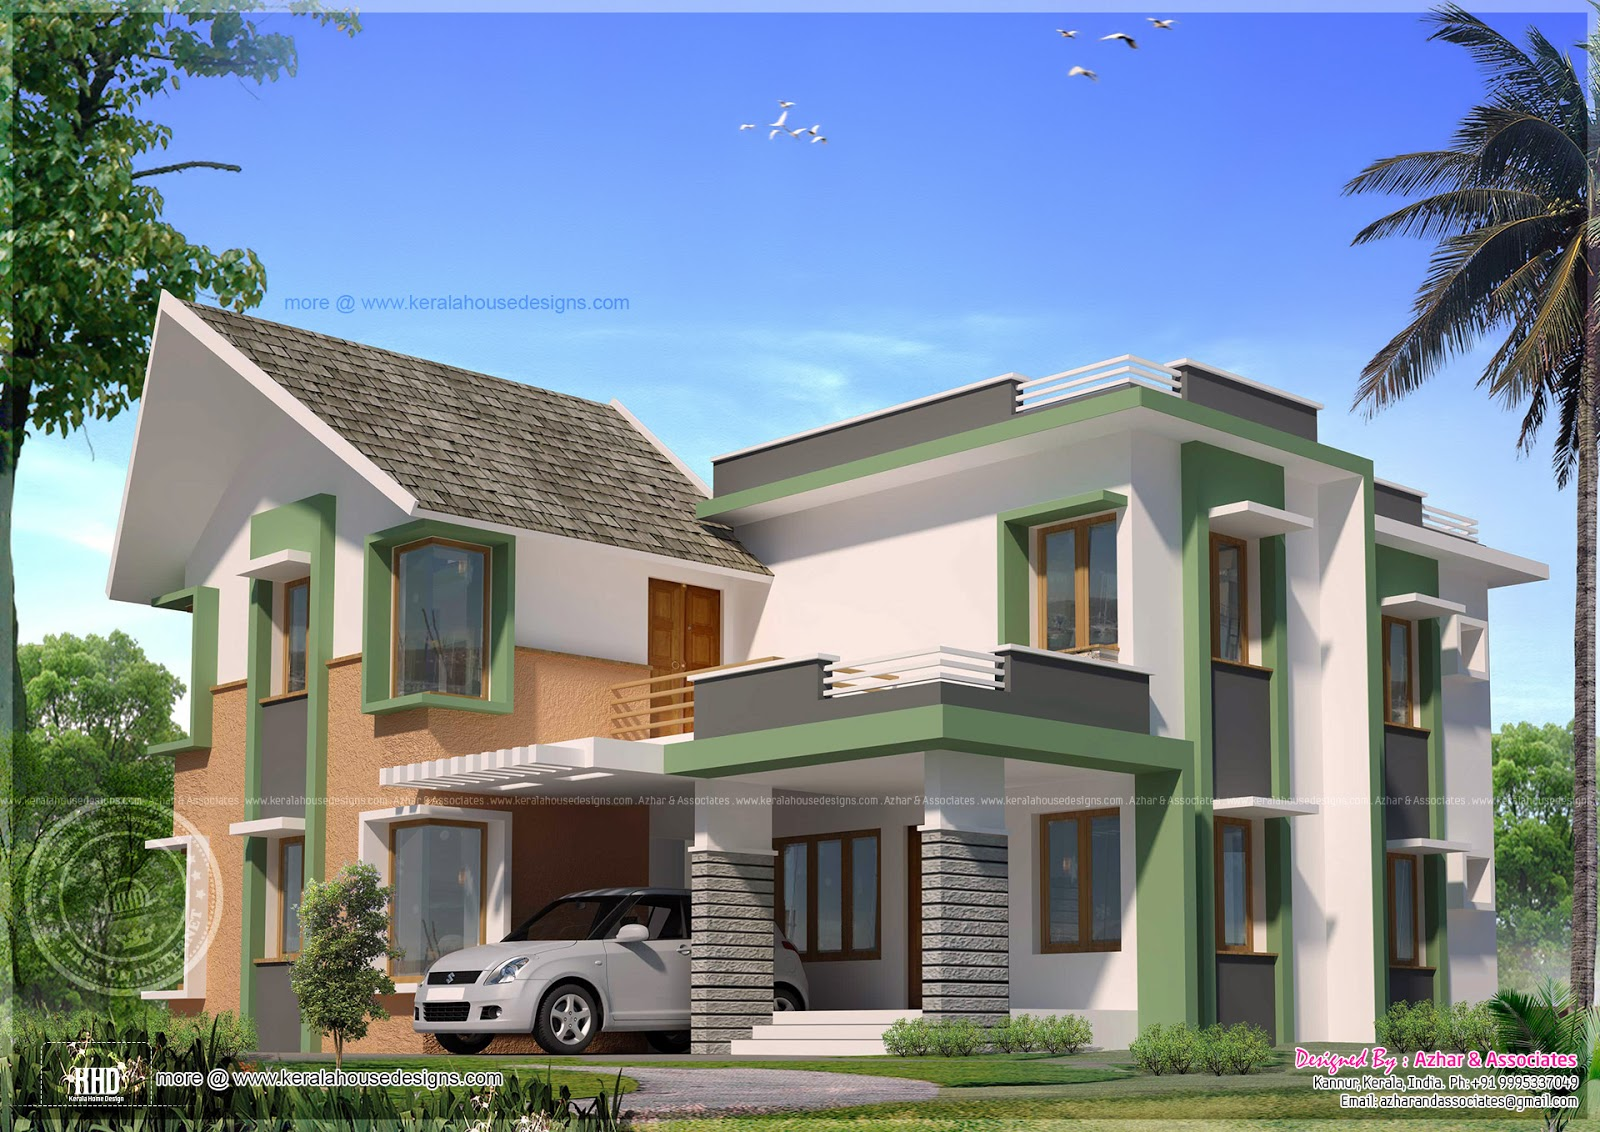 Modern exterior elevation drawing houses plans designs for Exterior house drawing